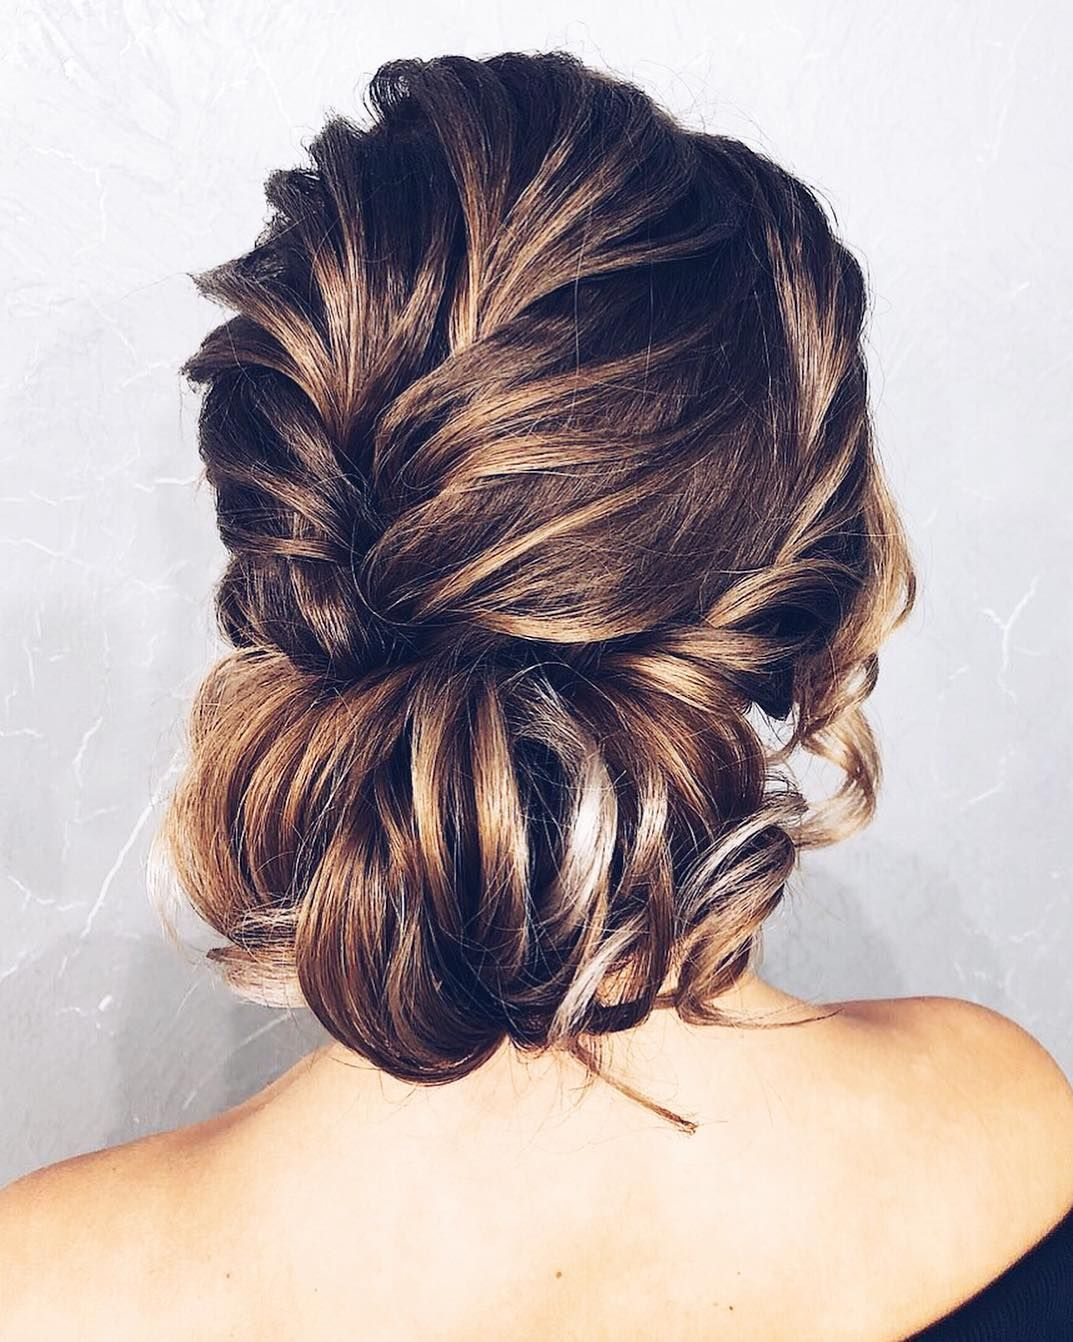 92 Drop-Dead Gorgeous Wedding Hairstyles For Every Bride To Be